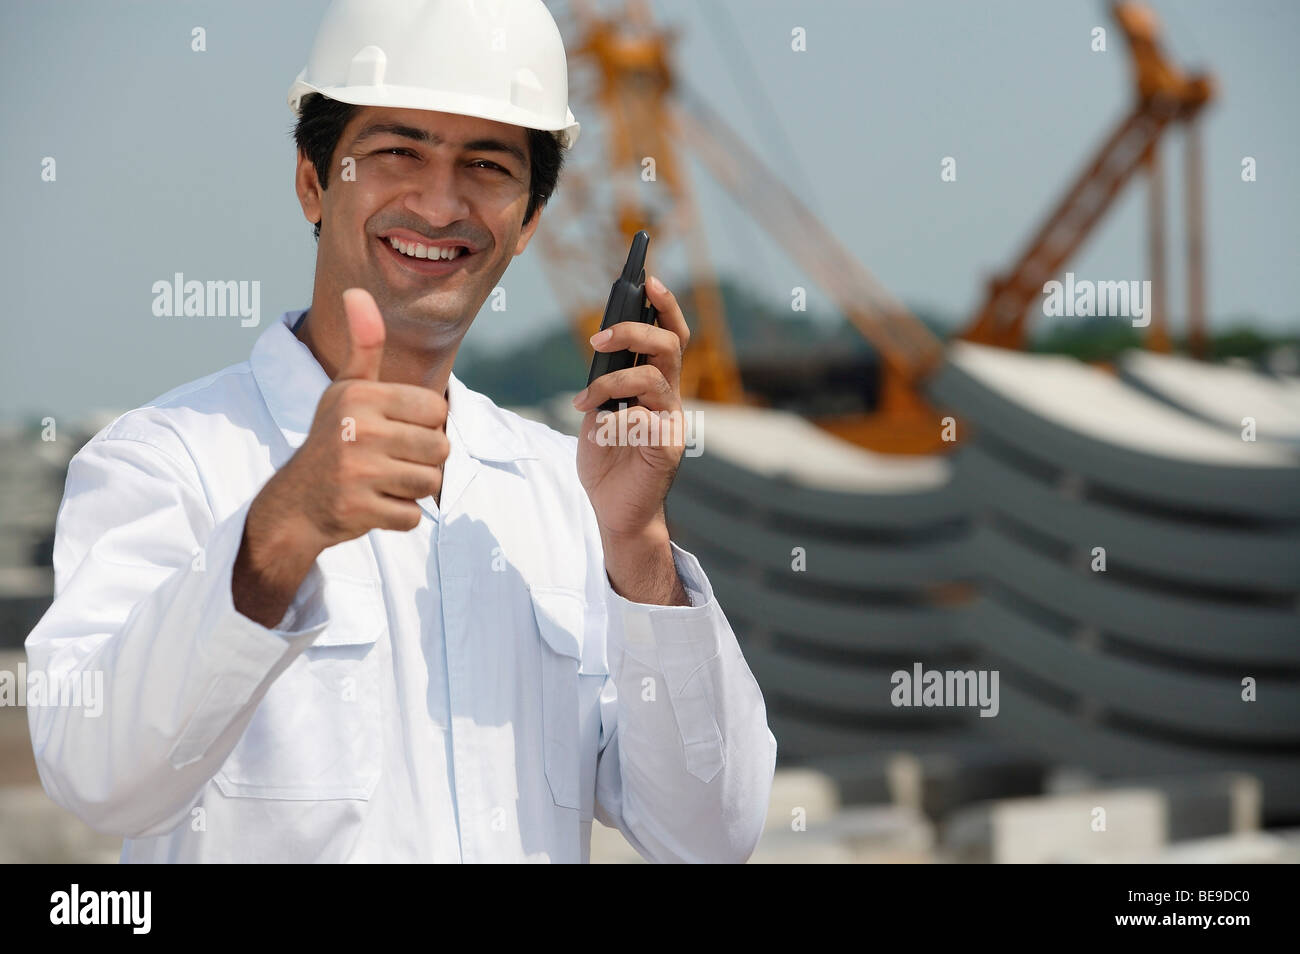 Man in work uniform gives thumb up - Stock Image